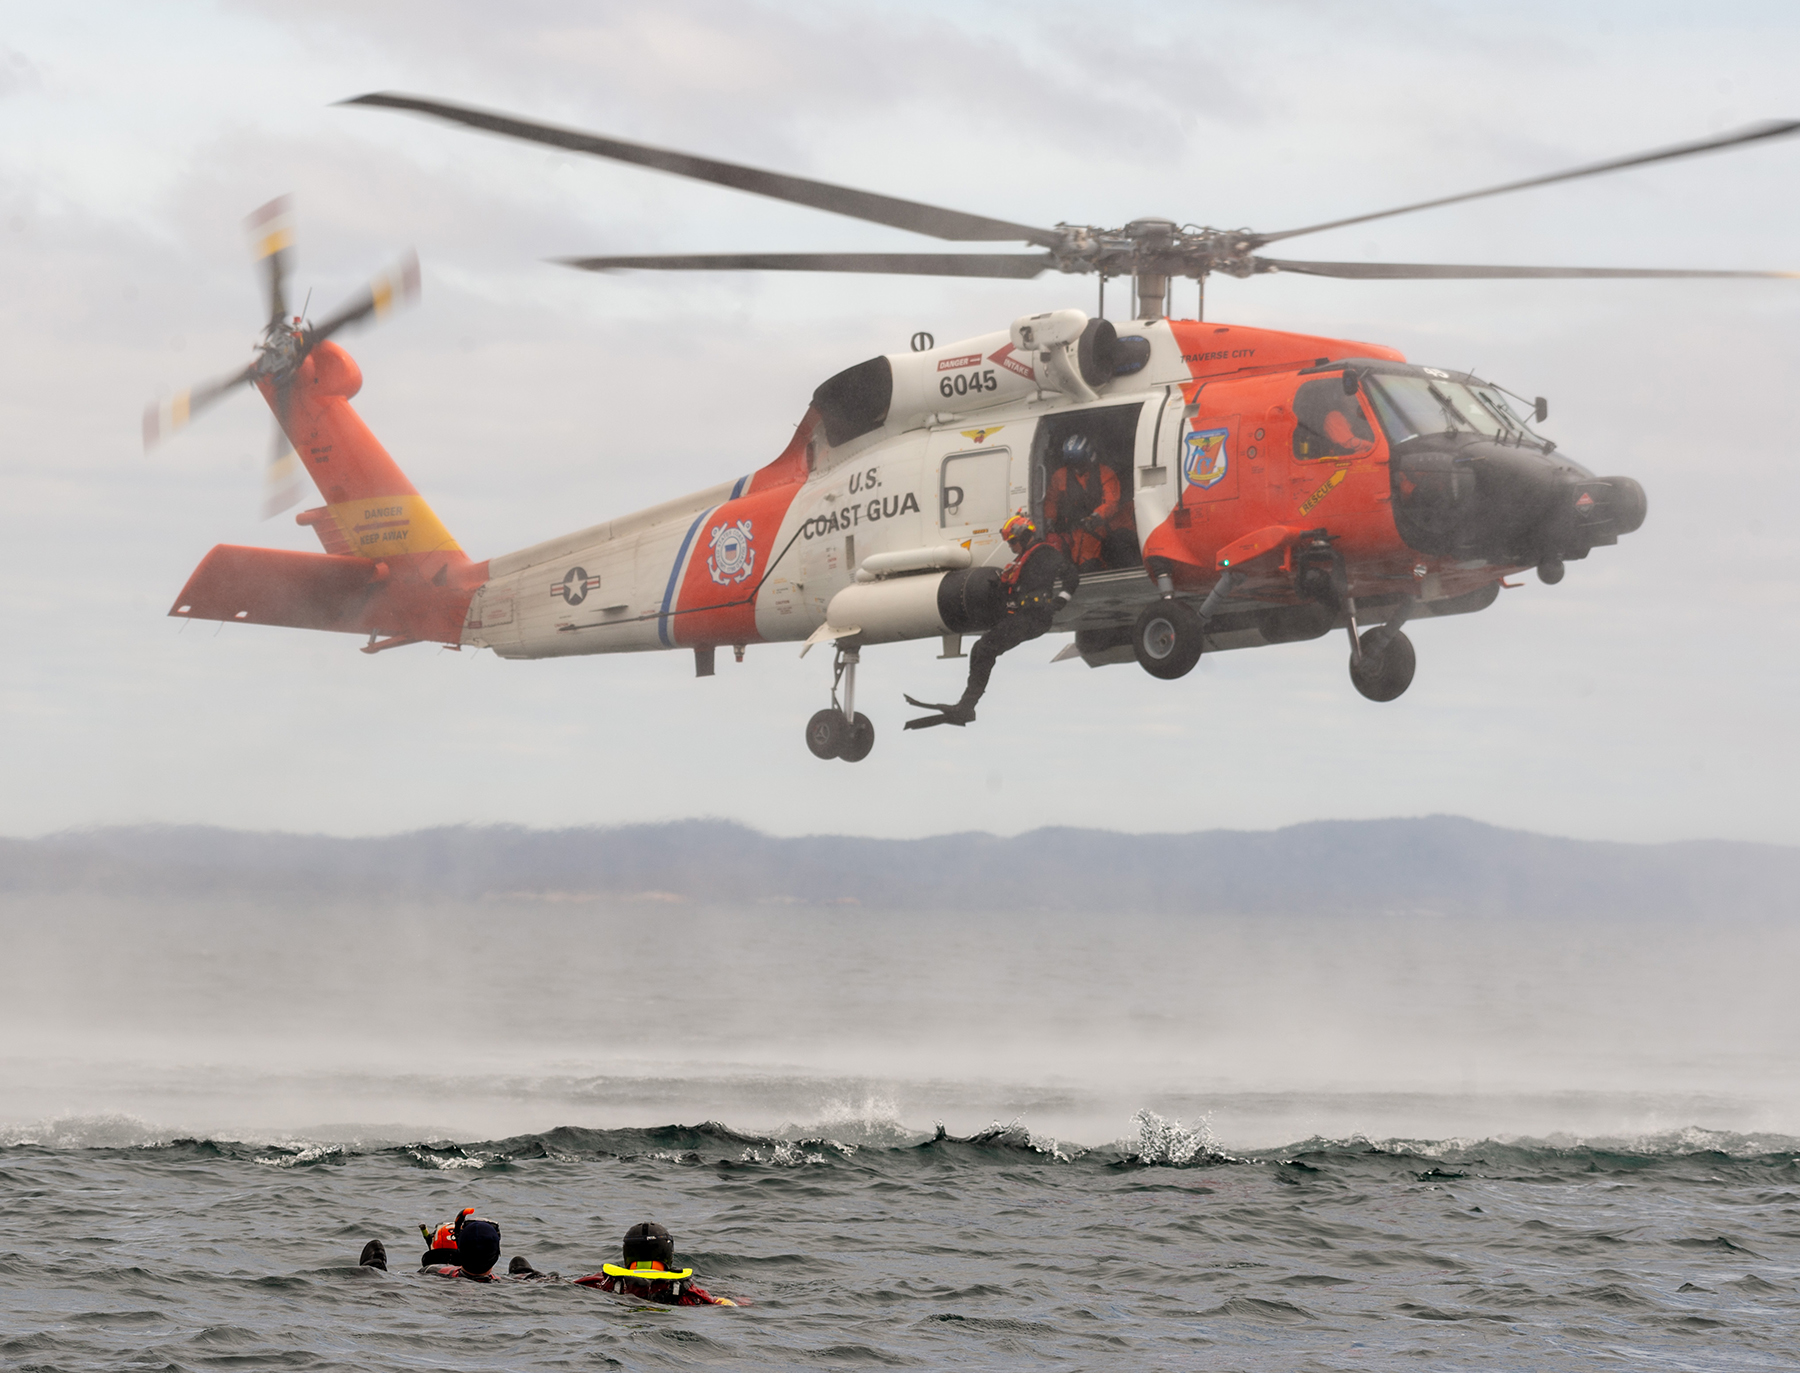 On May 6, 2019, a United States Coast Guard Rescue swimmer jumps from a U.S. HH-60 Jayhawk helicopter to rescue simulated casualties in the water as part of Chinthex 2019, near Thunder Bay, Ontario. PHOTO: Corporal Bryce Cooper, WG2019-0191-093